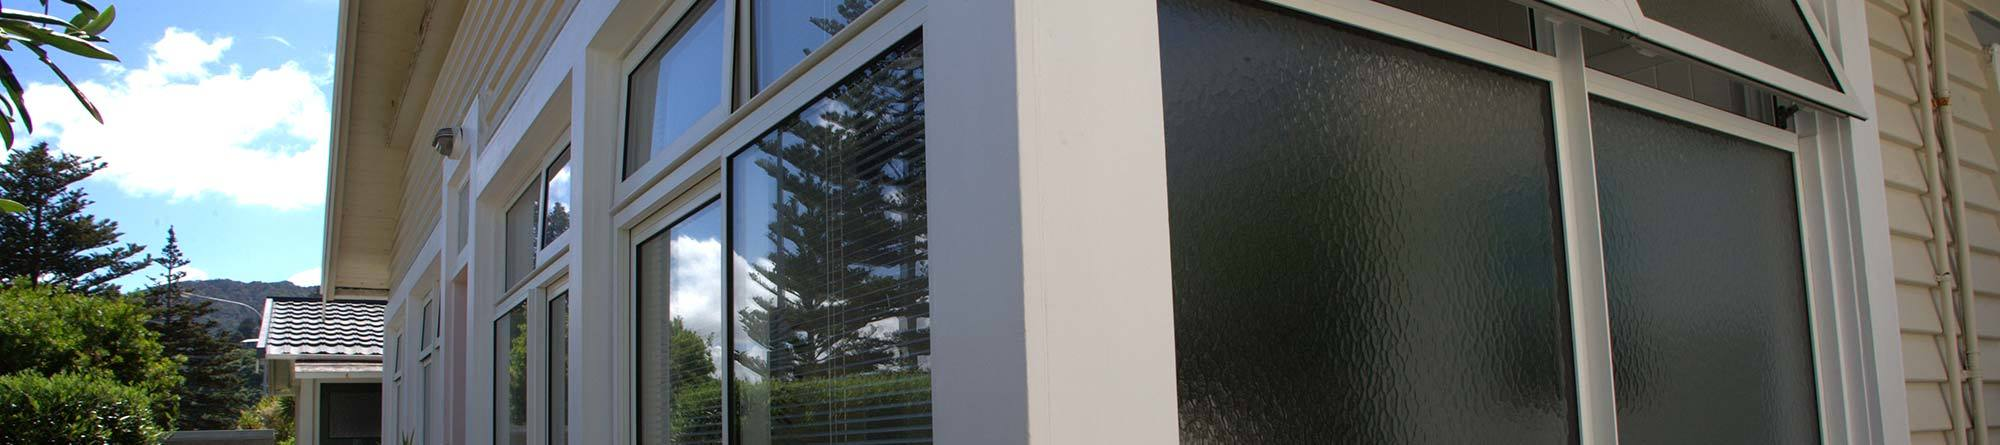 Replacement windows wellington double glazed windows for Window installation nz